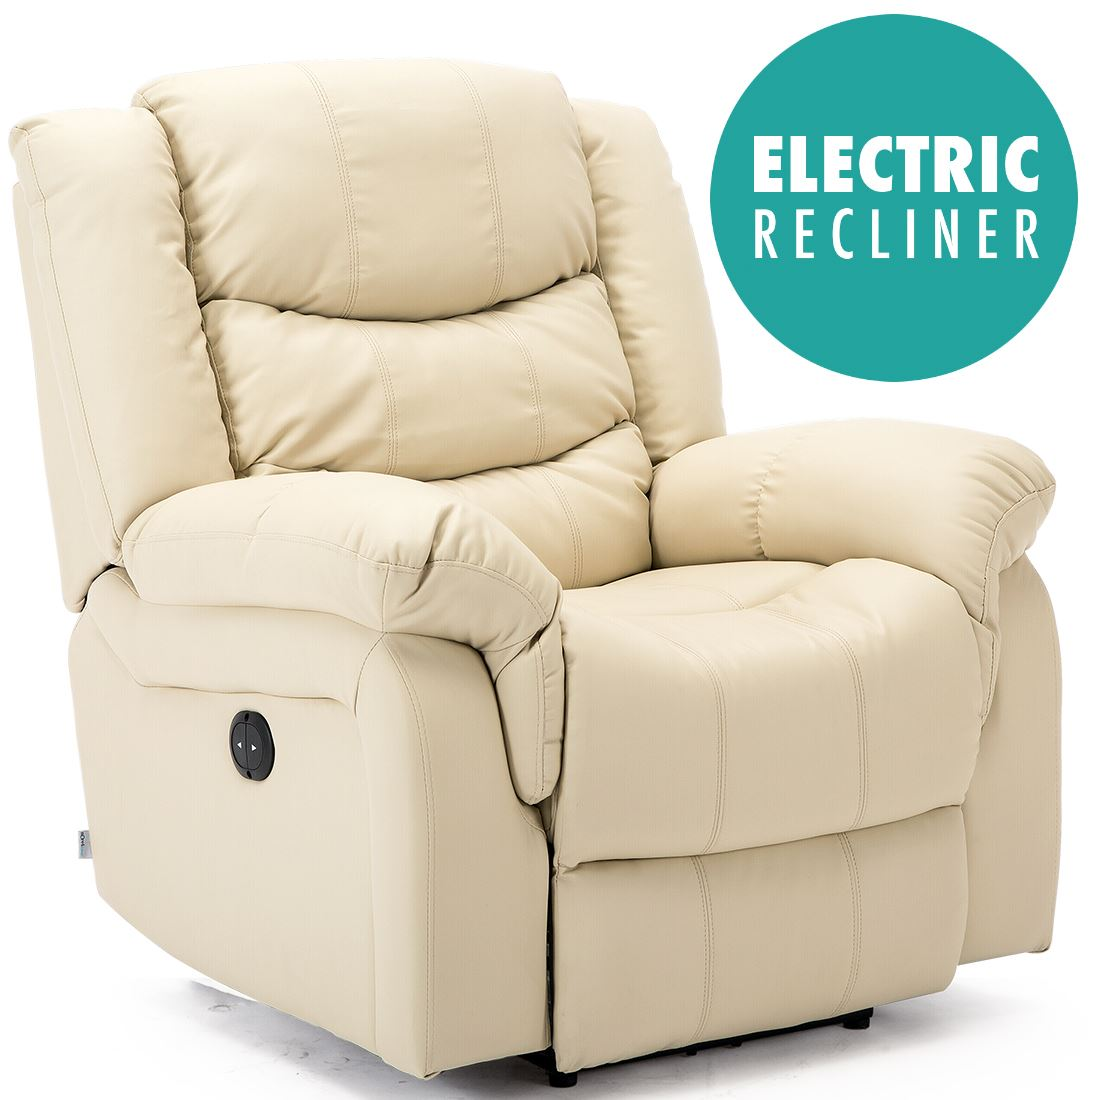 SEATTLE-ELECTRIC-LEATHER-AUTO-RECLINER-ARMCHAIR-SOFA-HOME-LOUNGE-CHAIR